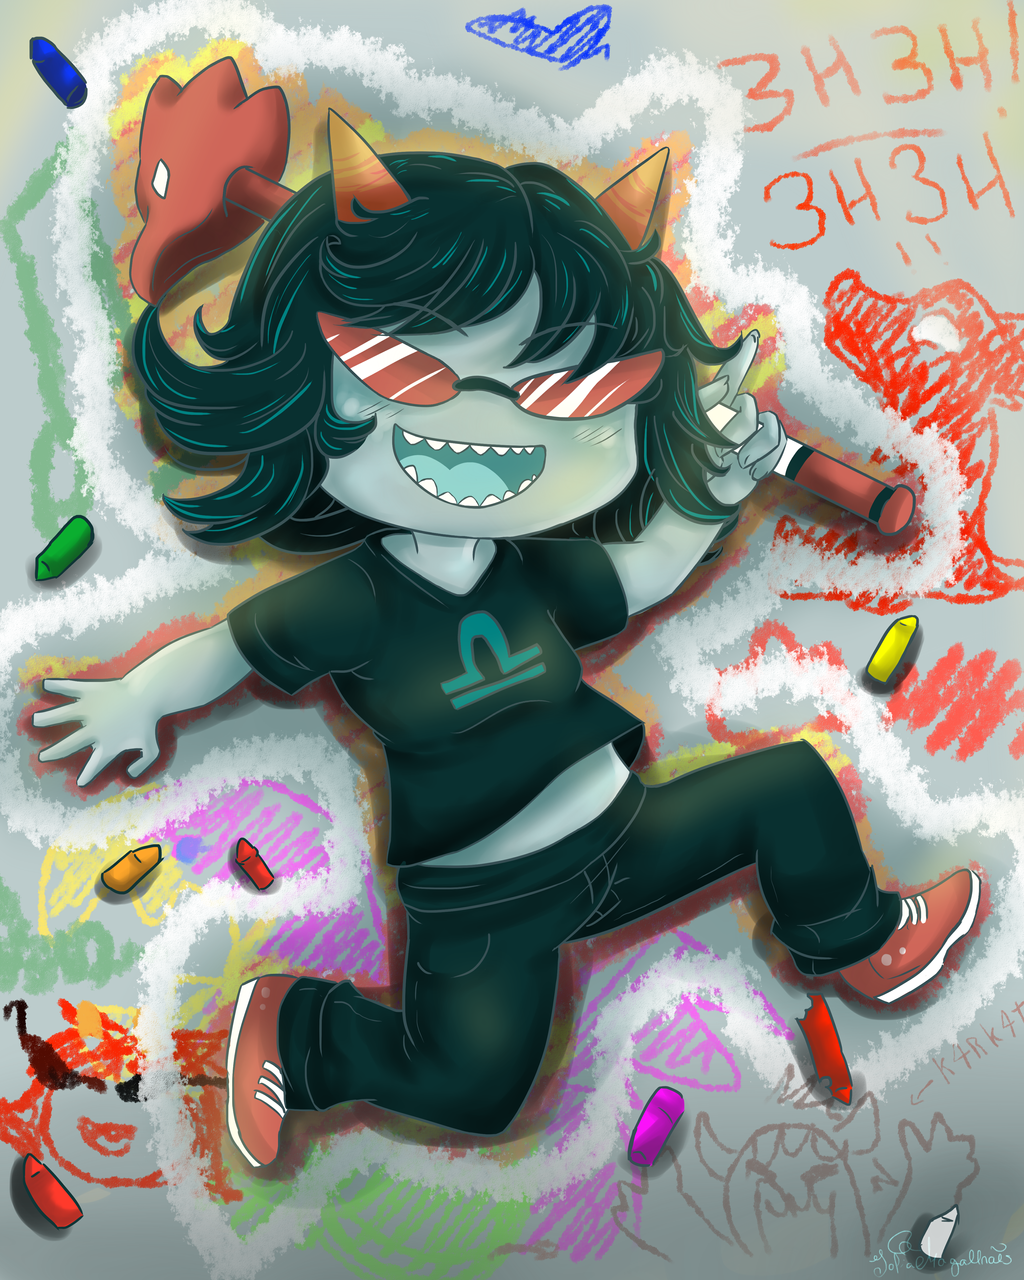 solar system homestuck trolls - photo #43